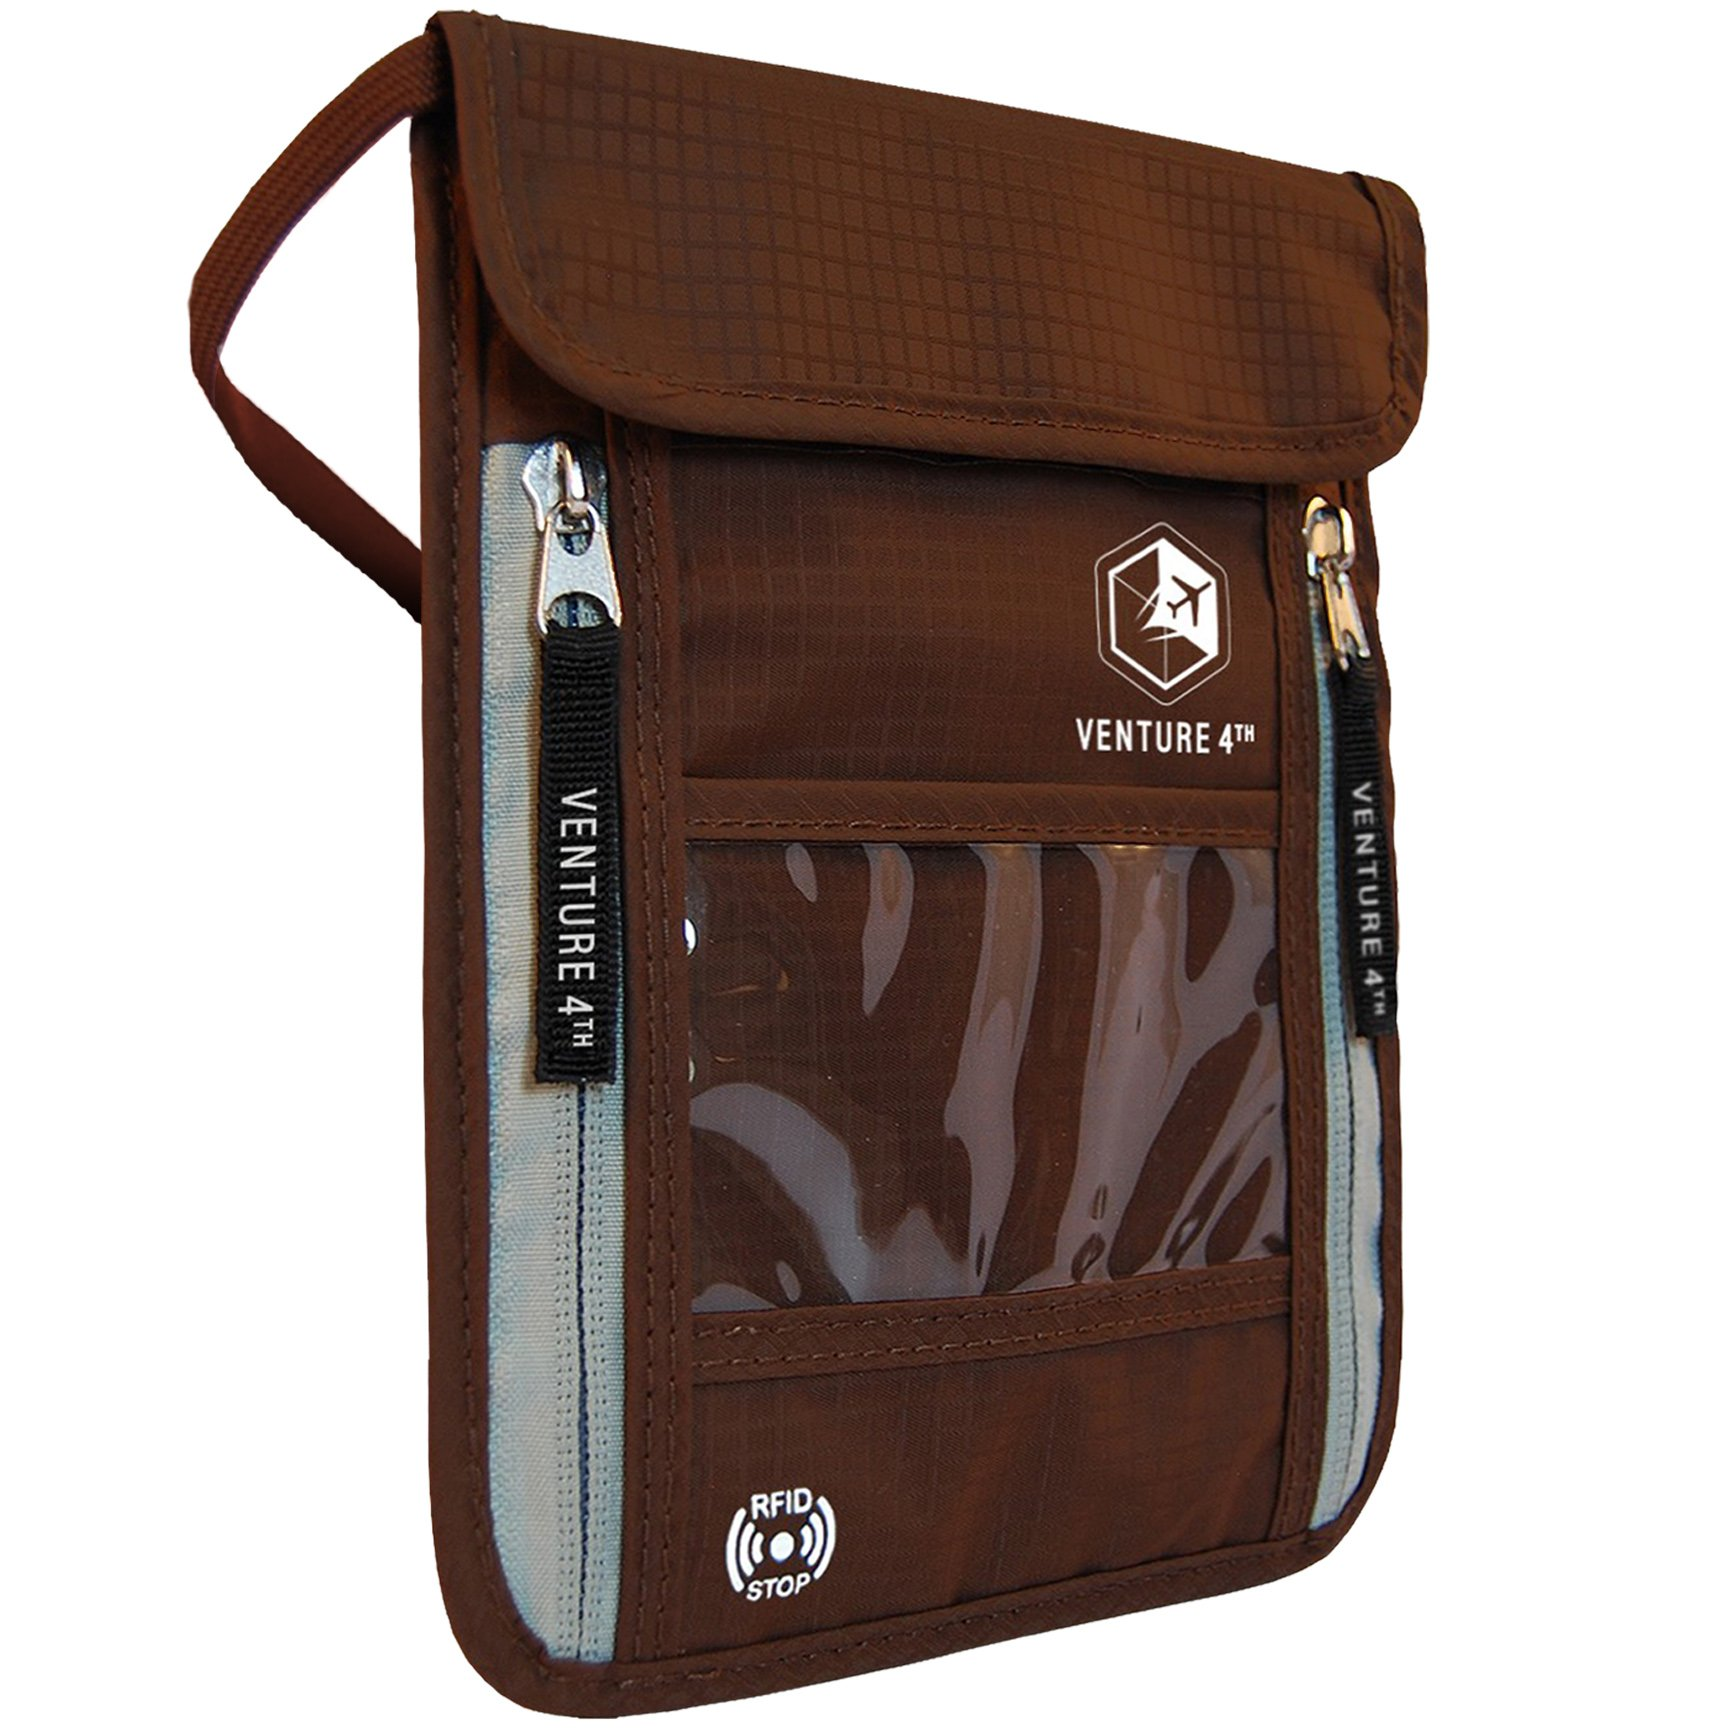 Venture 4th Passport Holder Neck Pouch With RFID – Safety Passport Pouch (Brown)